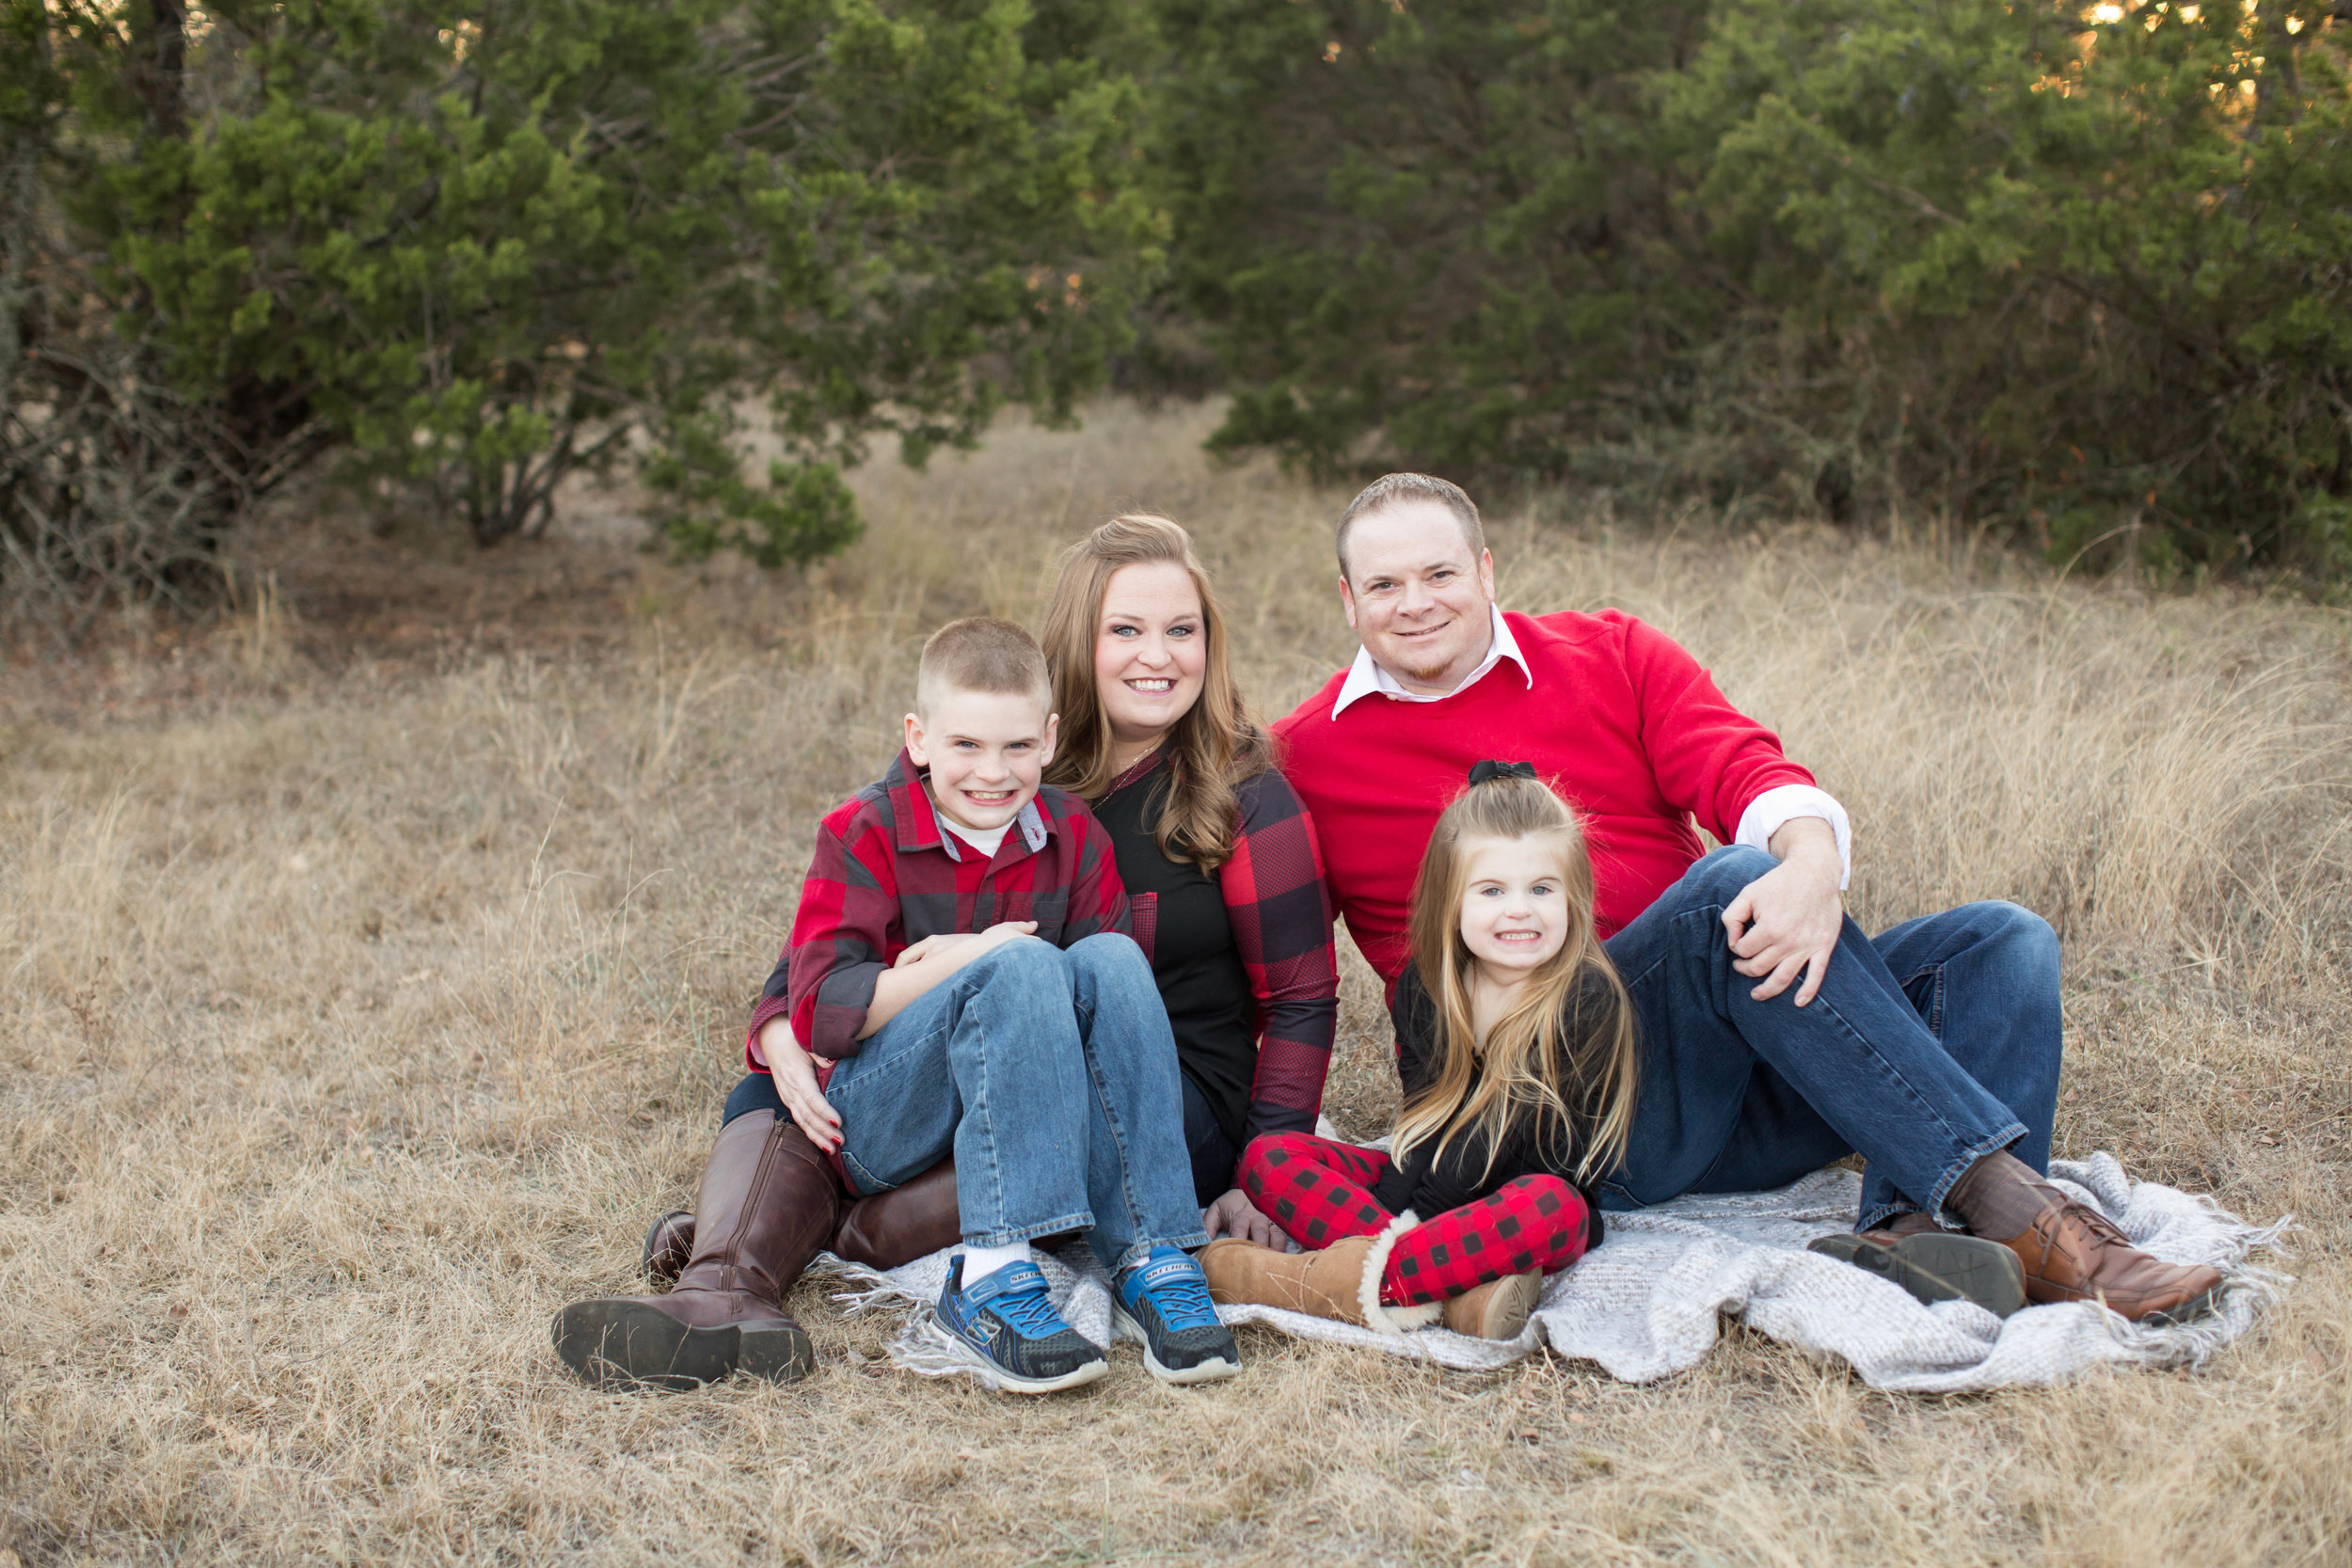 Marble_Falls_Sternad_Family_Photographer_Jenna_Petty_01.jpg